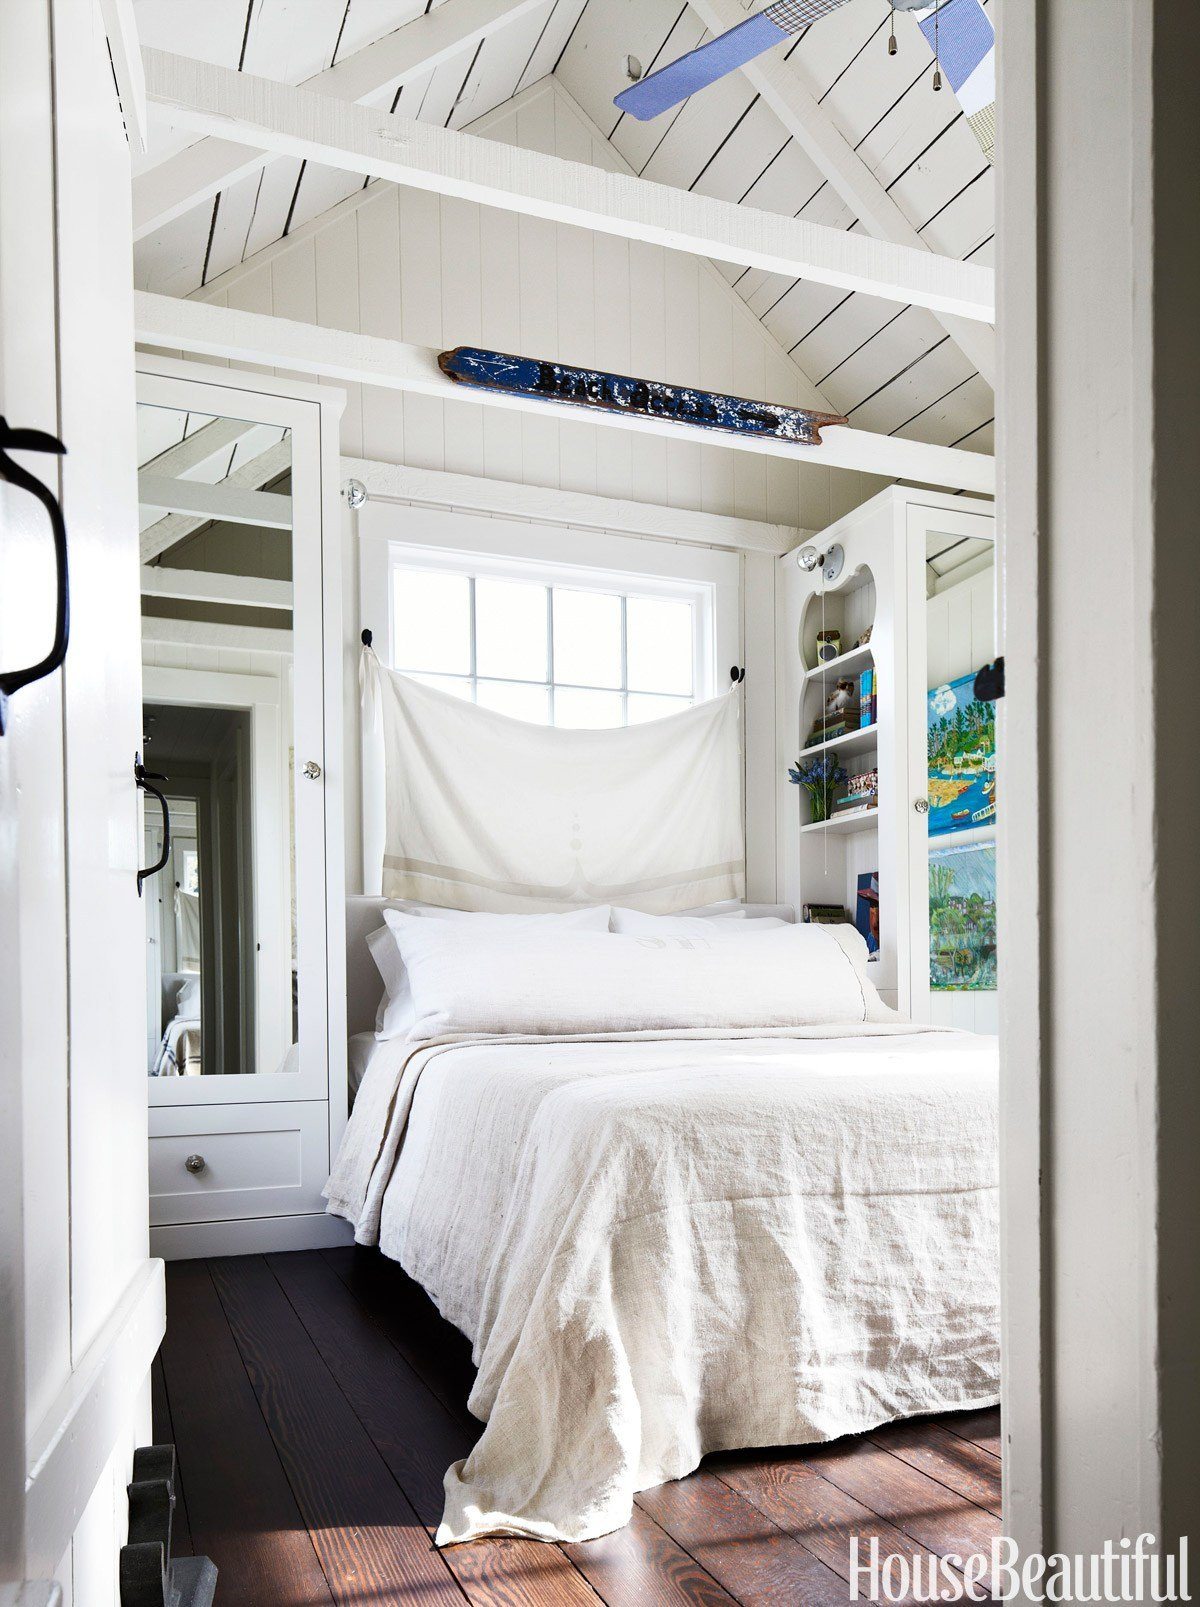 Best 10 Small Bedroom Decorating Ideas Design Tips For Tiny Bedrooms With Pictures